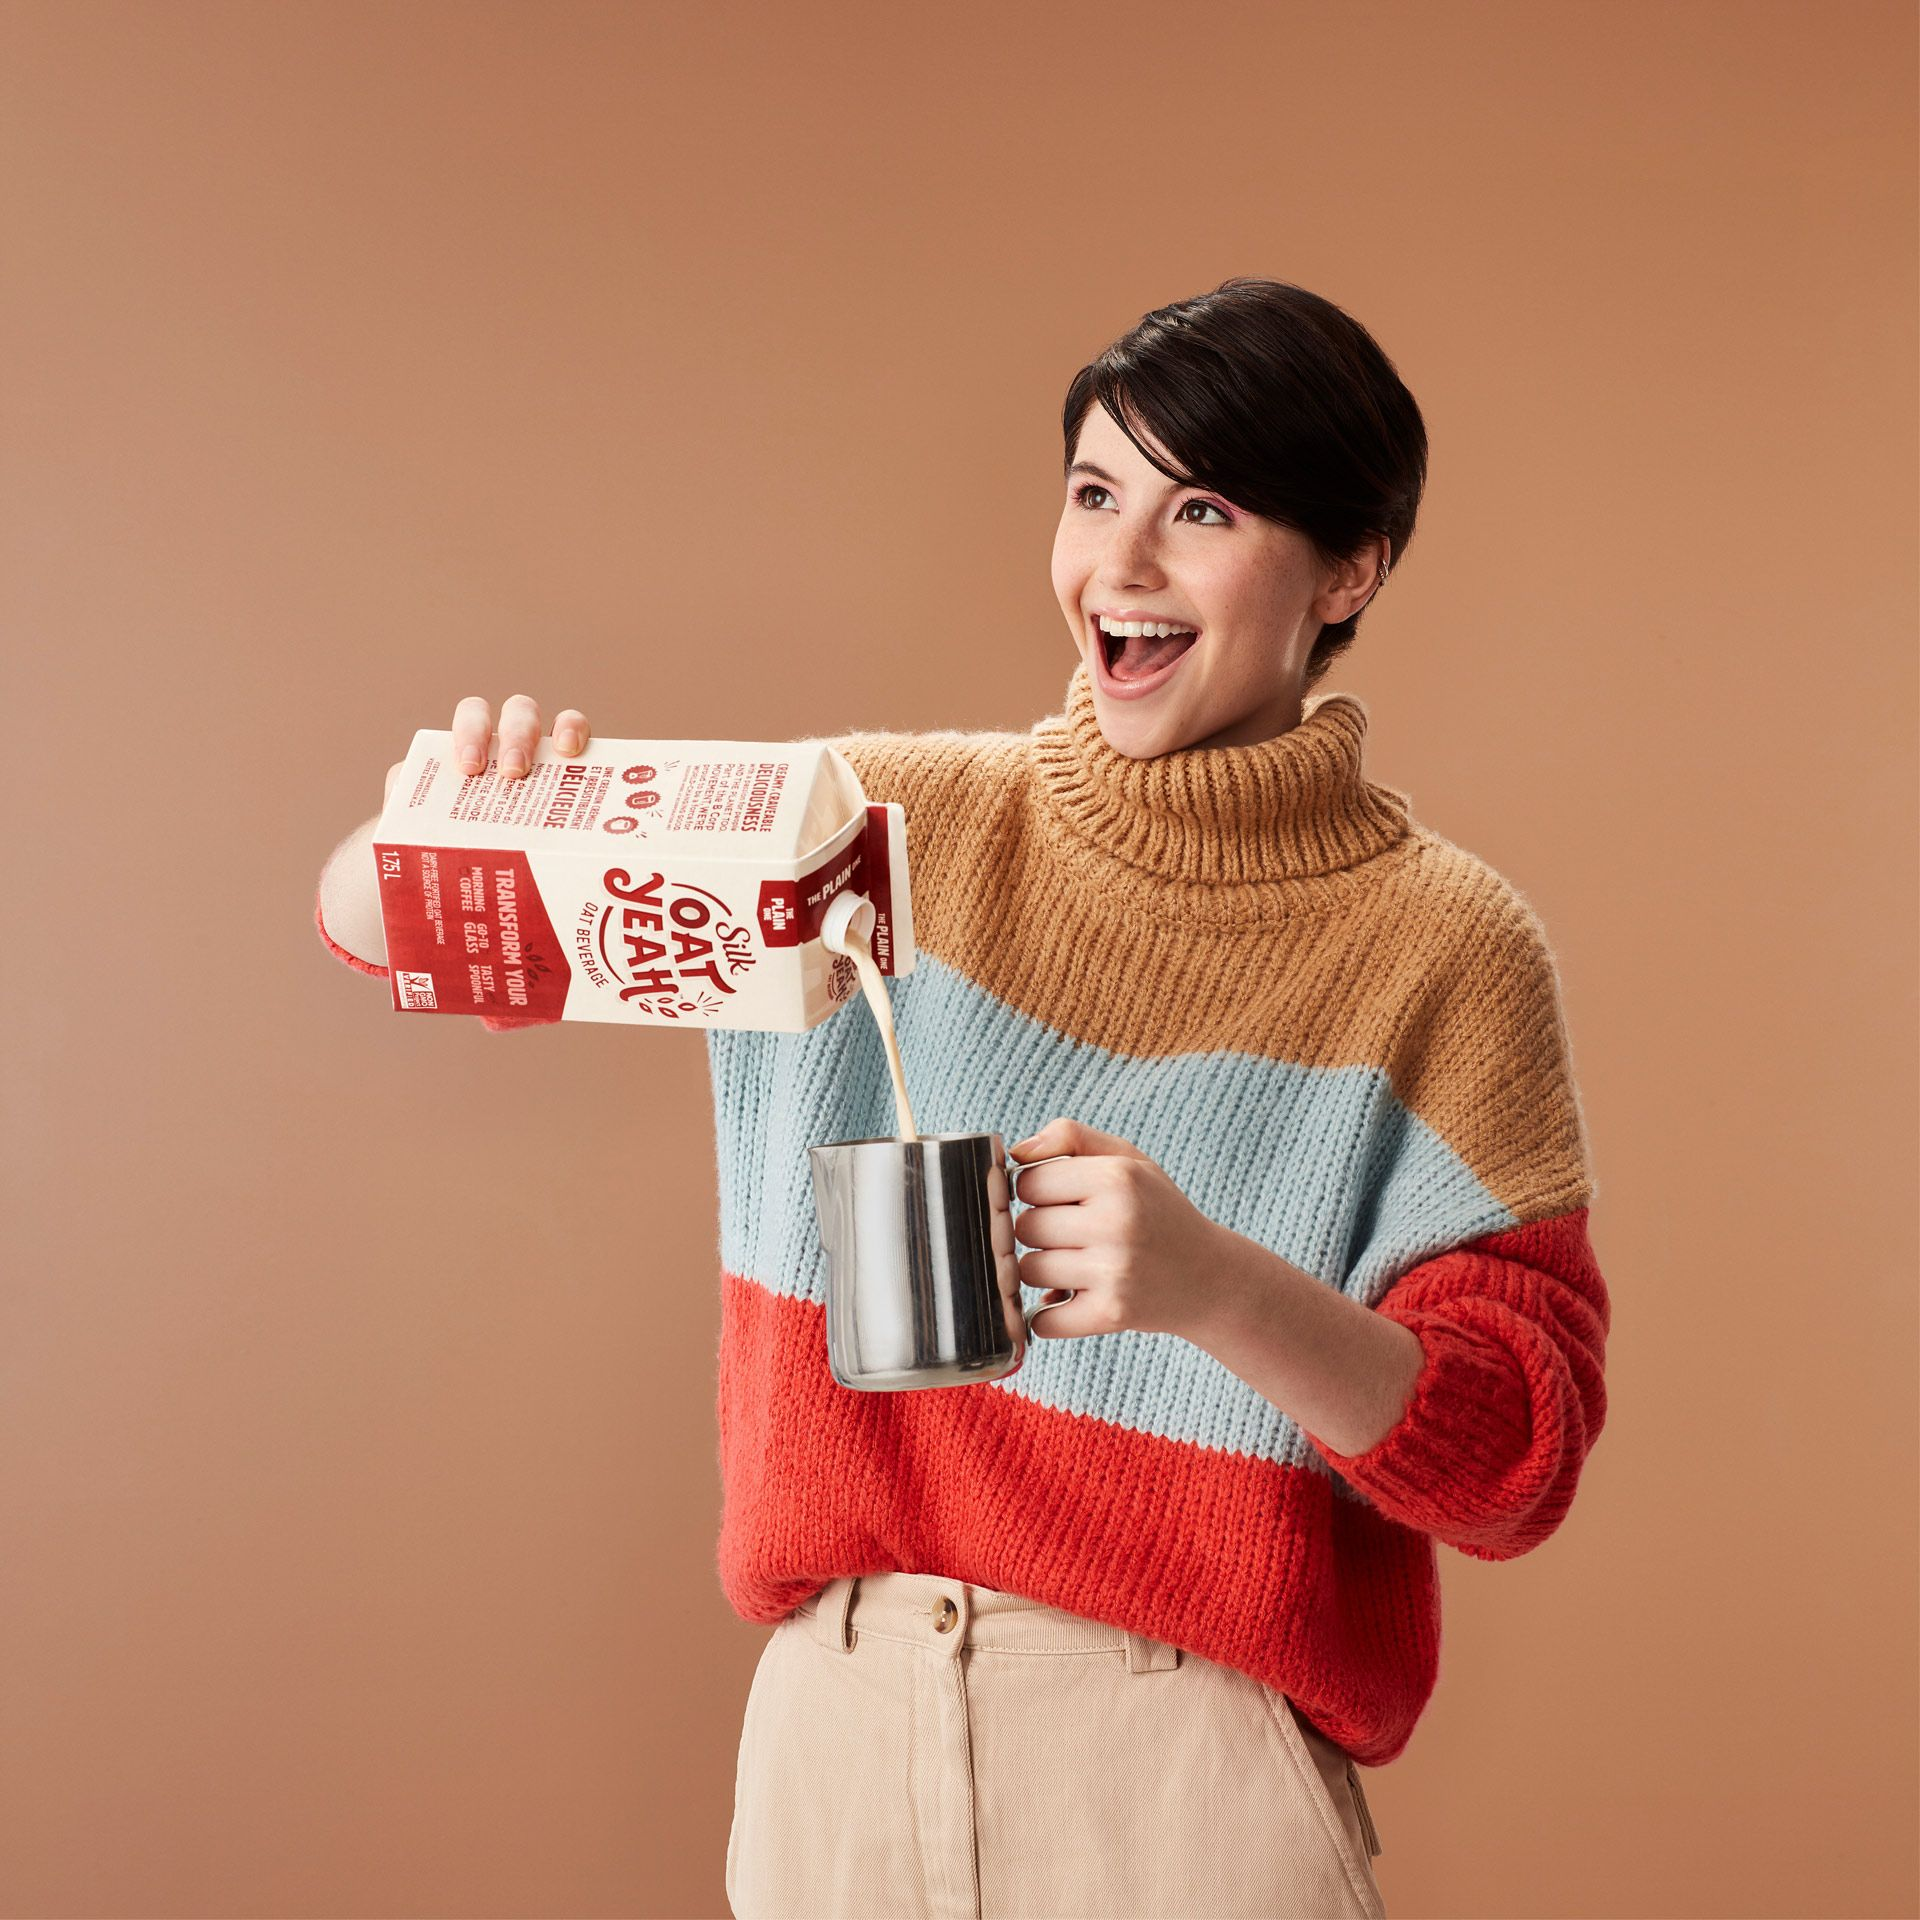 woman short black hair smiling pouring oat milk into metal barista cup wearing colorful large sweater by Simon Duhamel for Silk Oat Yeah and Carl agency